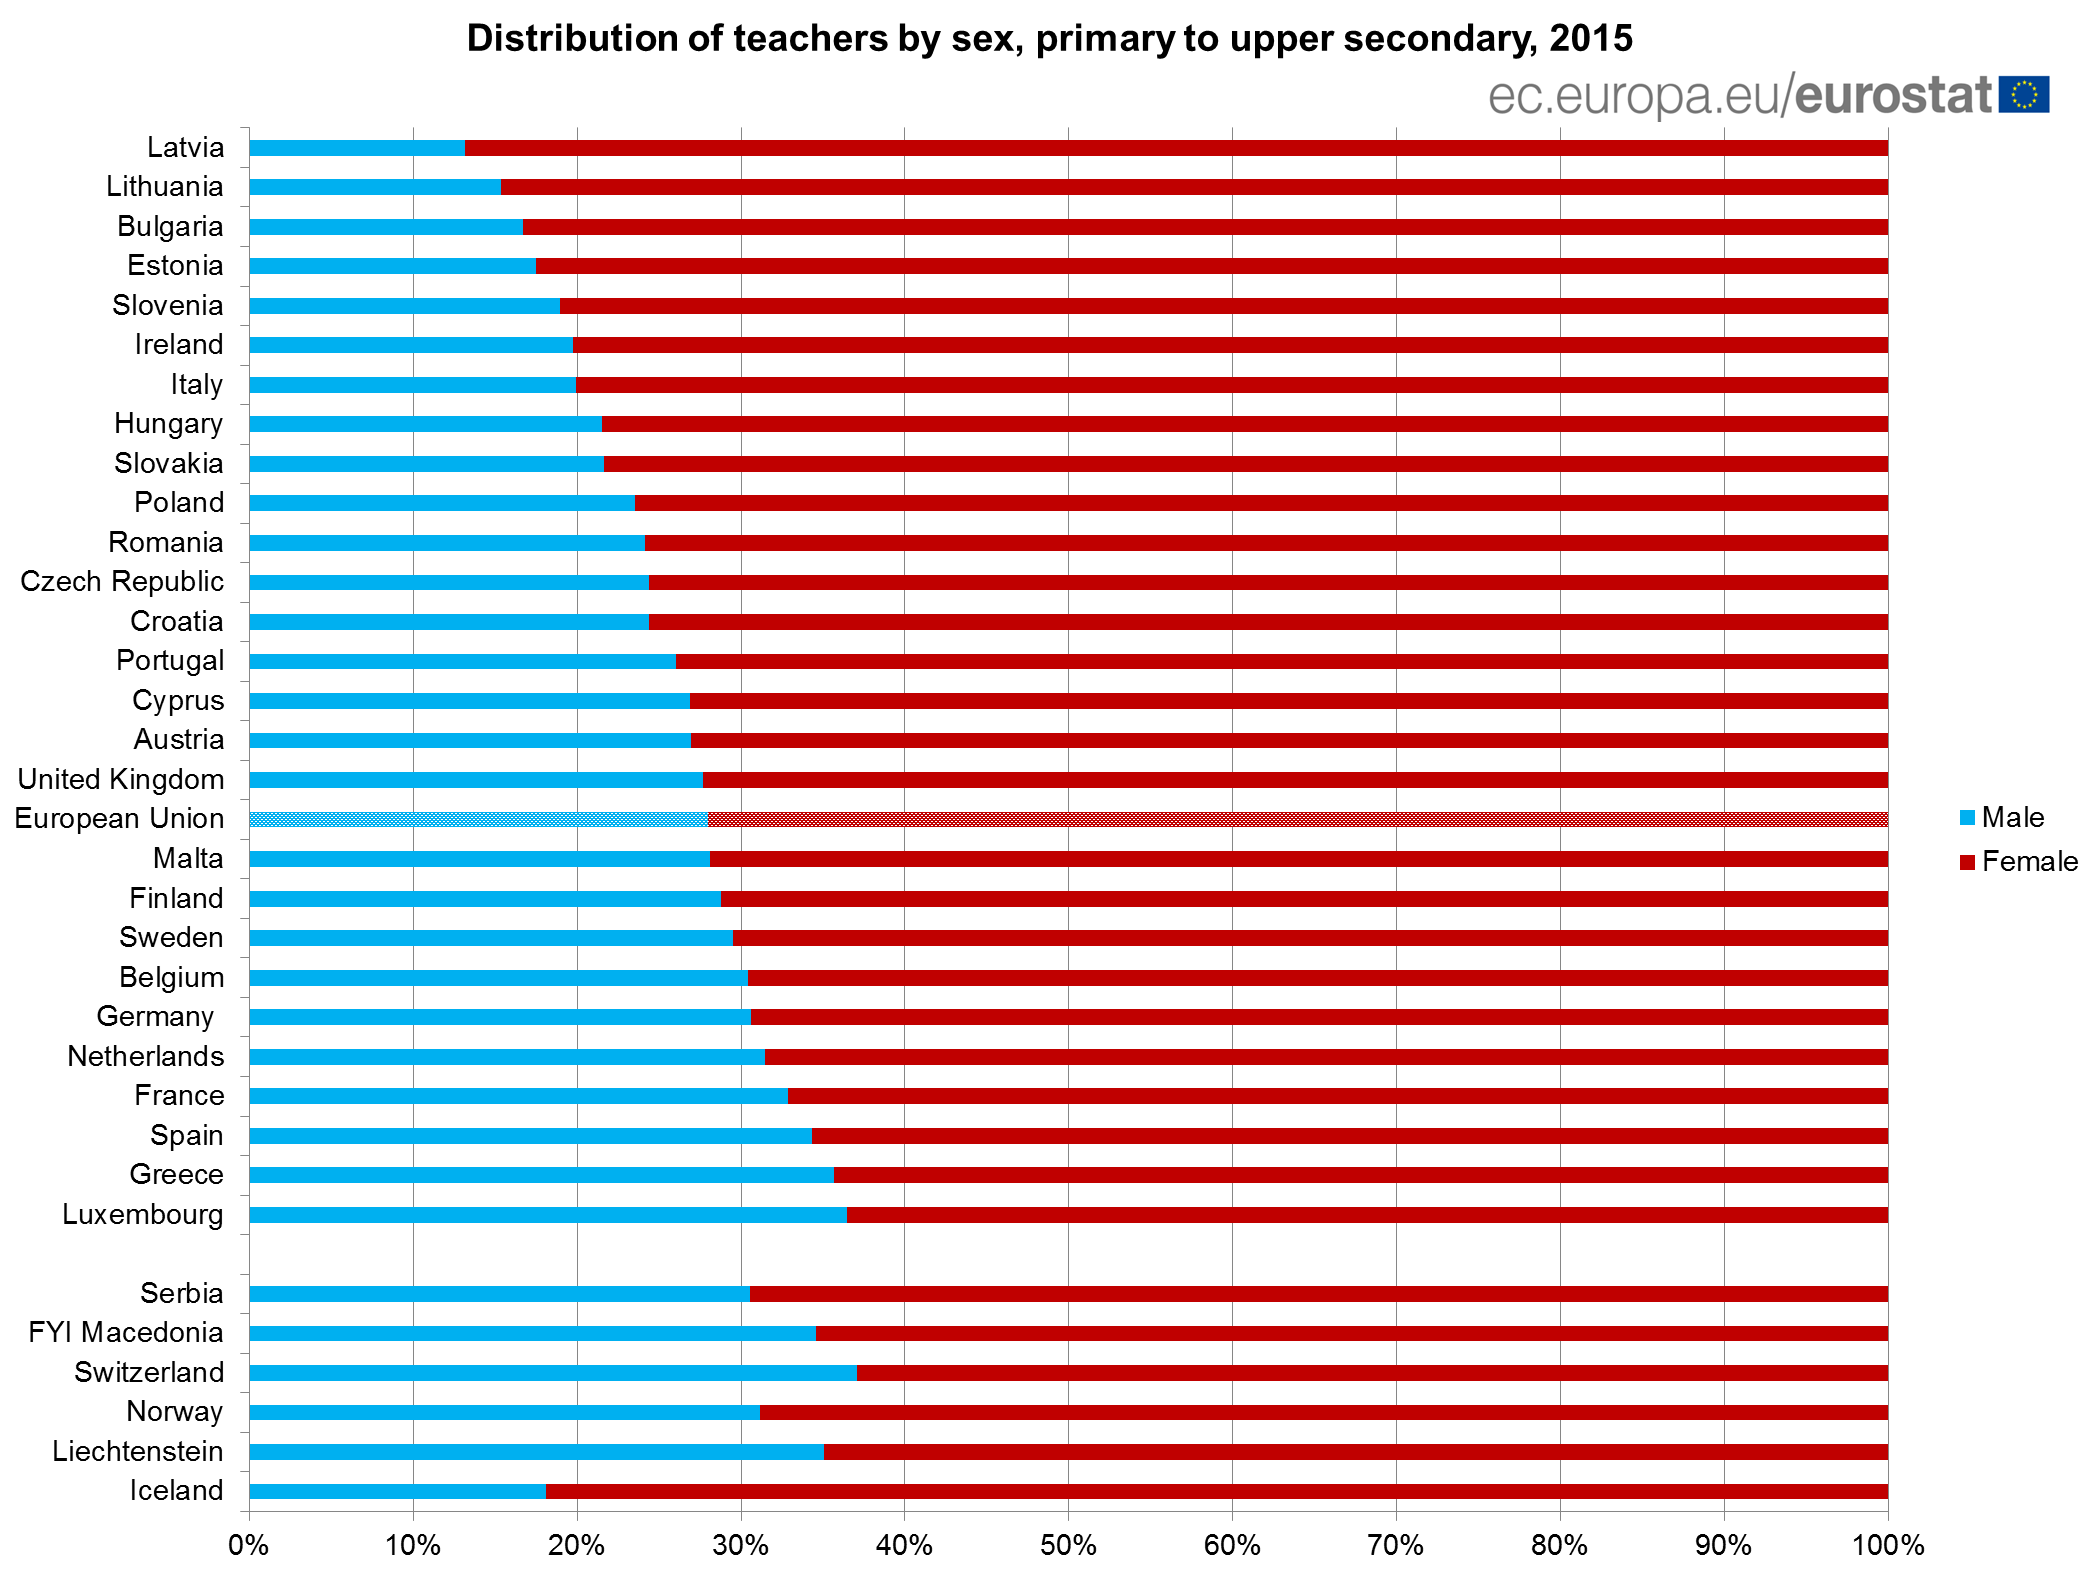 Distribution of teachers by sex, primary to upper secondary, 2015